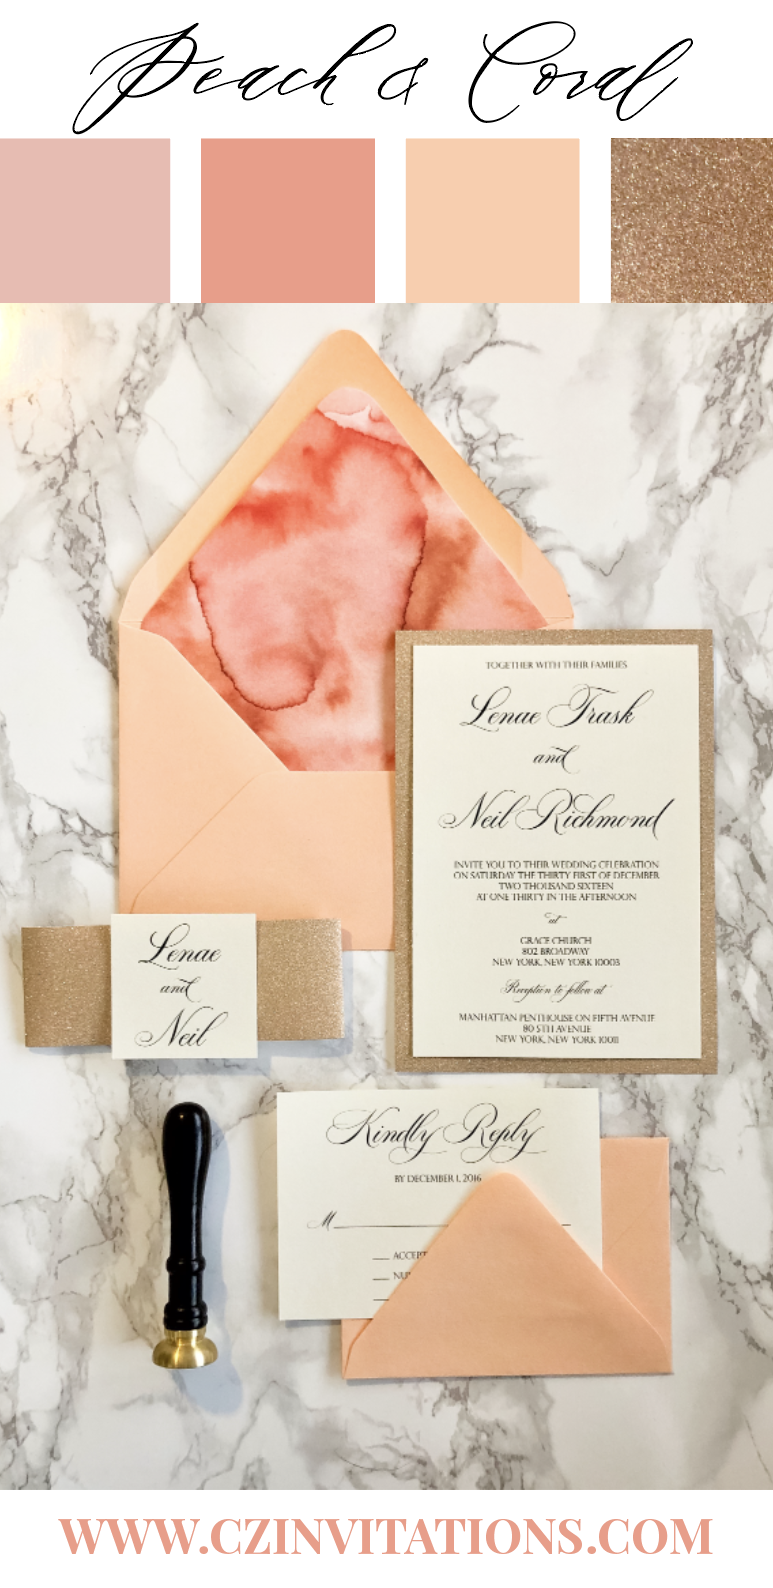 Peach and Coral make a stunning pair with Rose Gold Glitter! This invitation is ideal for a bright, colorful, and sparkly Spring or Summer wedding!